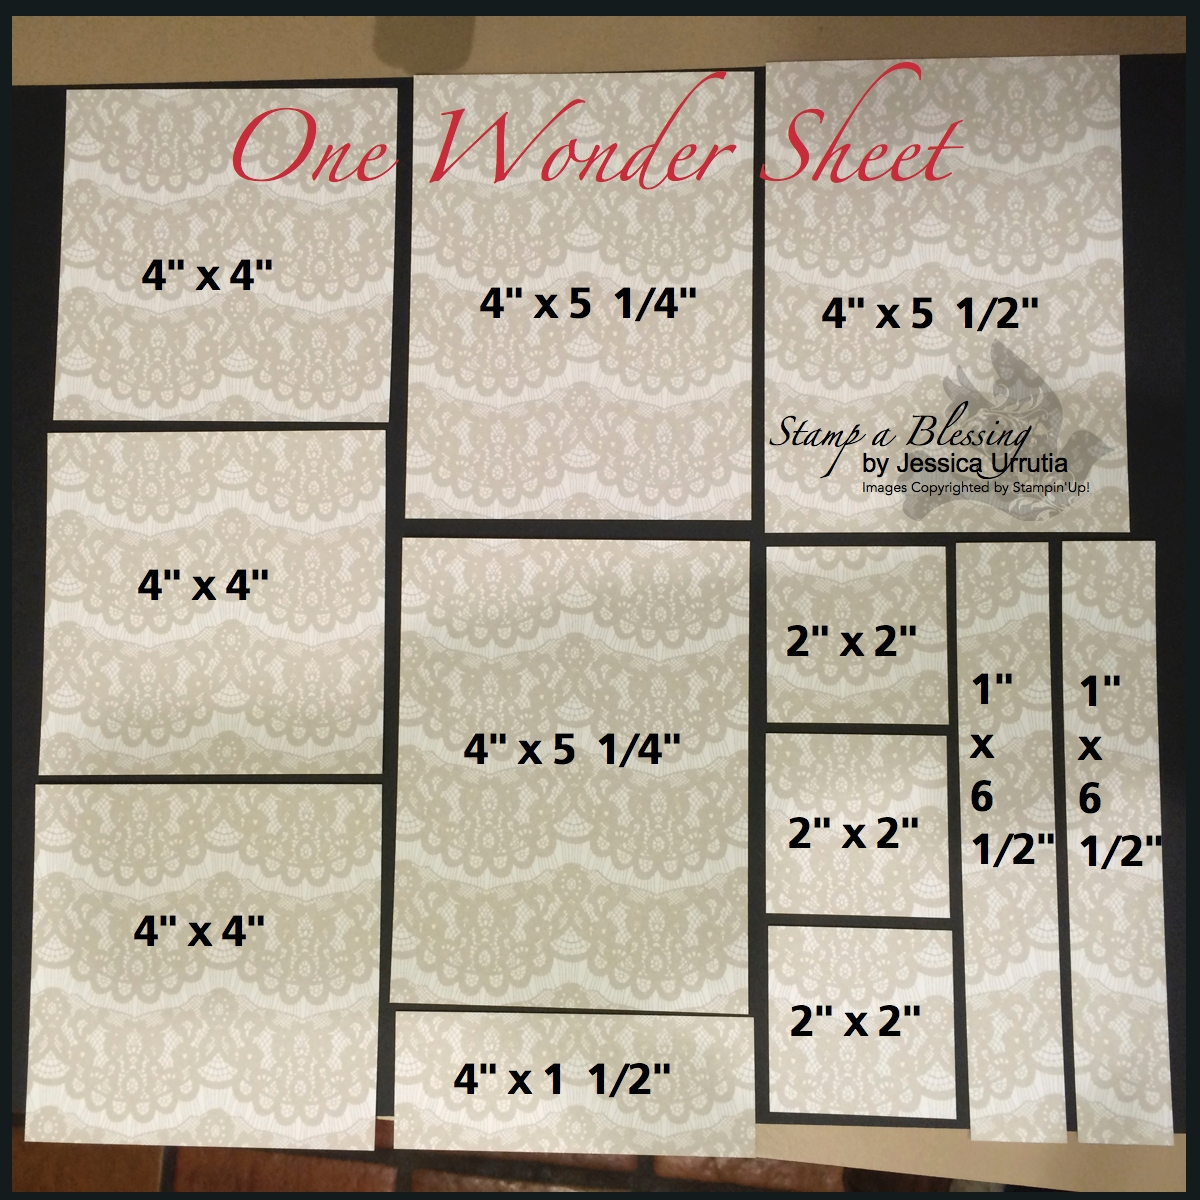 Stamp a Blessing: One Wonder Sheet Template 1 - photo#3